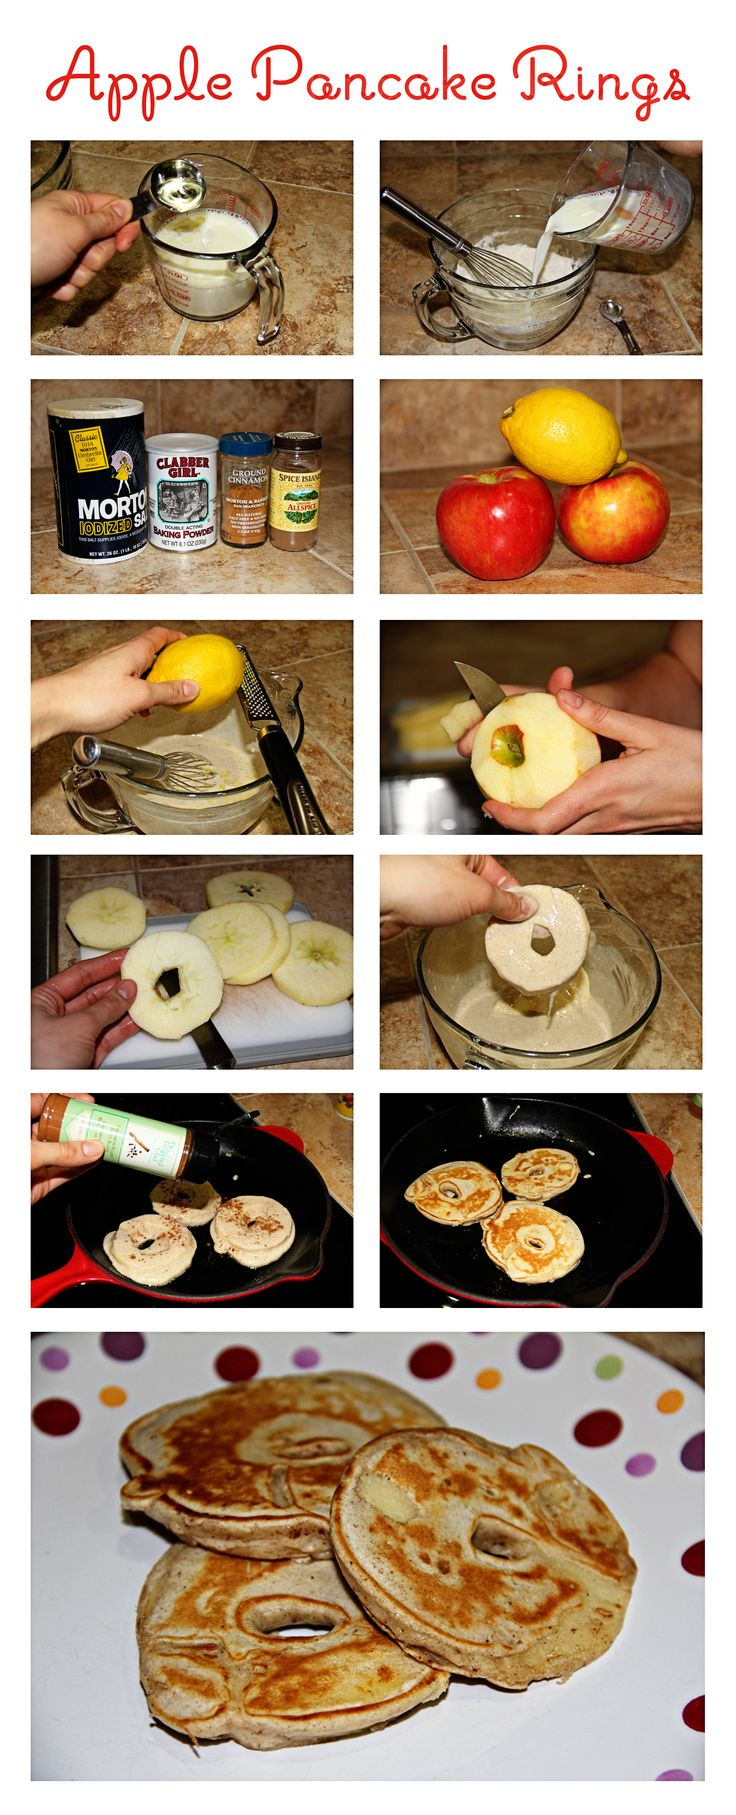 Apple Pancake Rings! So good and pretty simple to make! Click on photo to see the recipe I was inspired by. I used my own scratch pancake mix. Photos by ♥Lara Croft